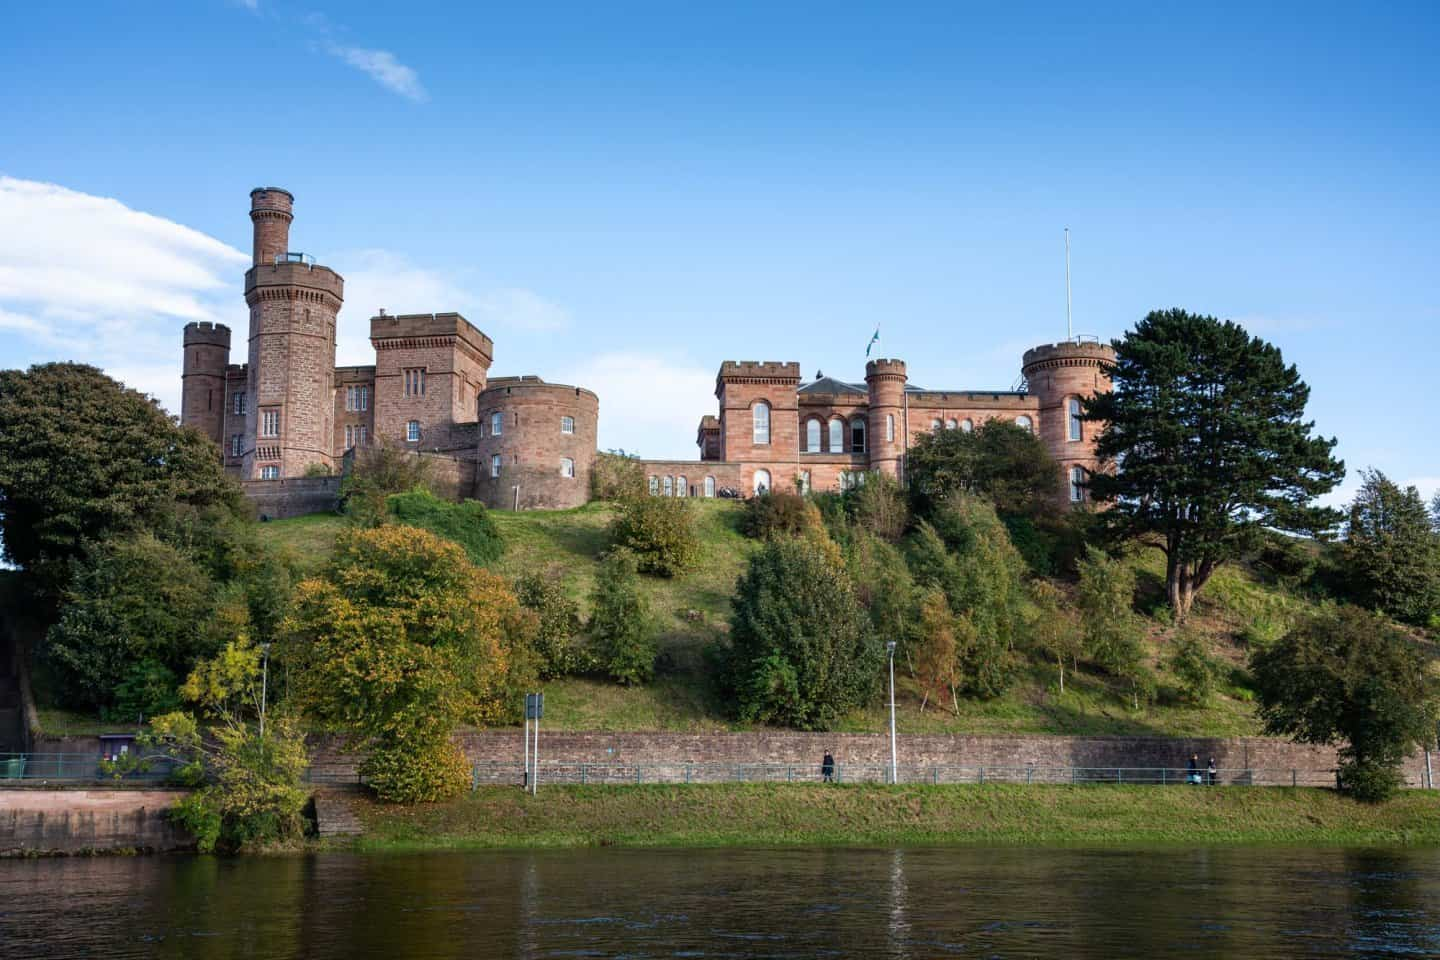 While impressive in some photos, Inverness Castle looks more like an old university than a castle.